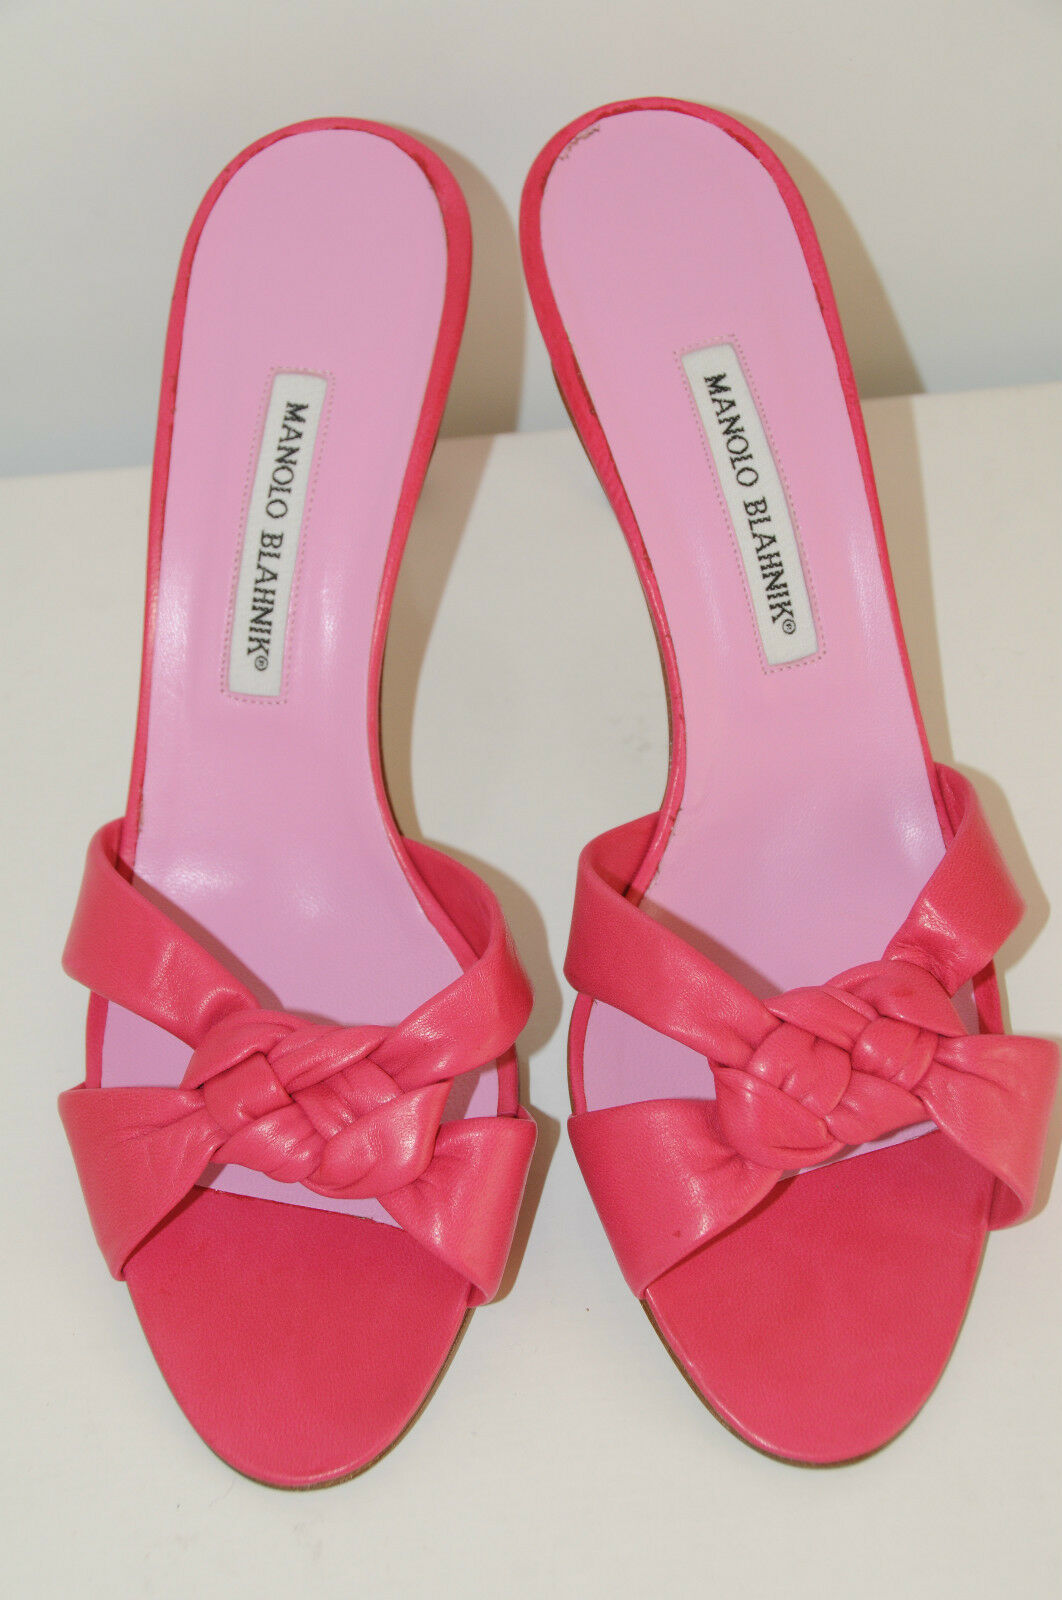 745 New MANOLO BLAHNIK EXIS SANDALS Slide chaussures rose Soft Nappa Leather 37.5